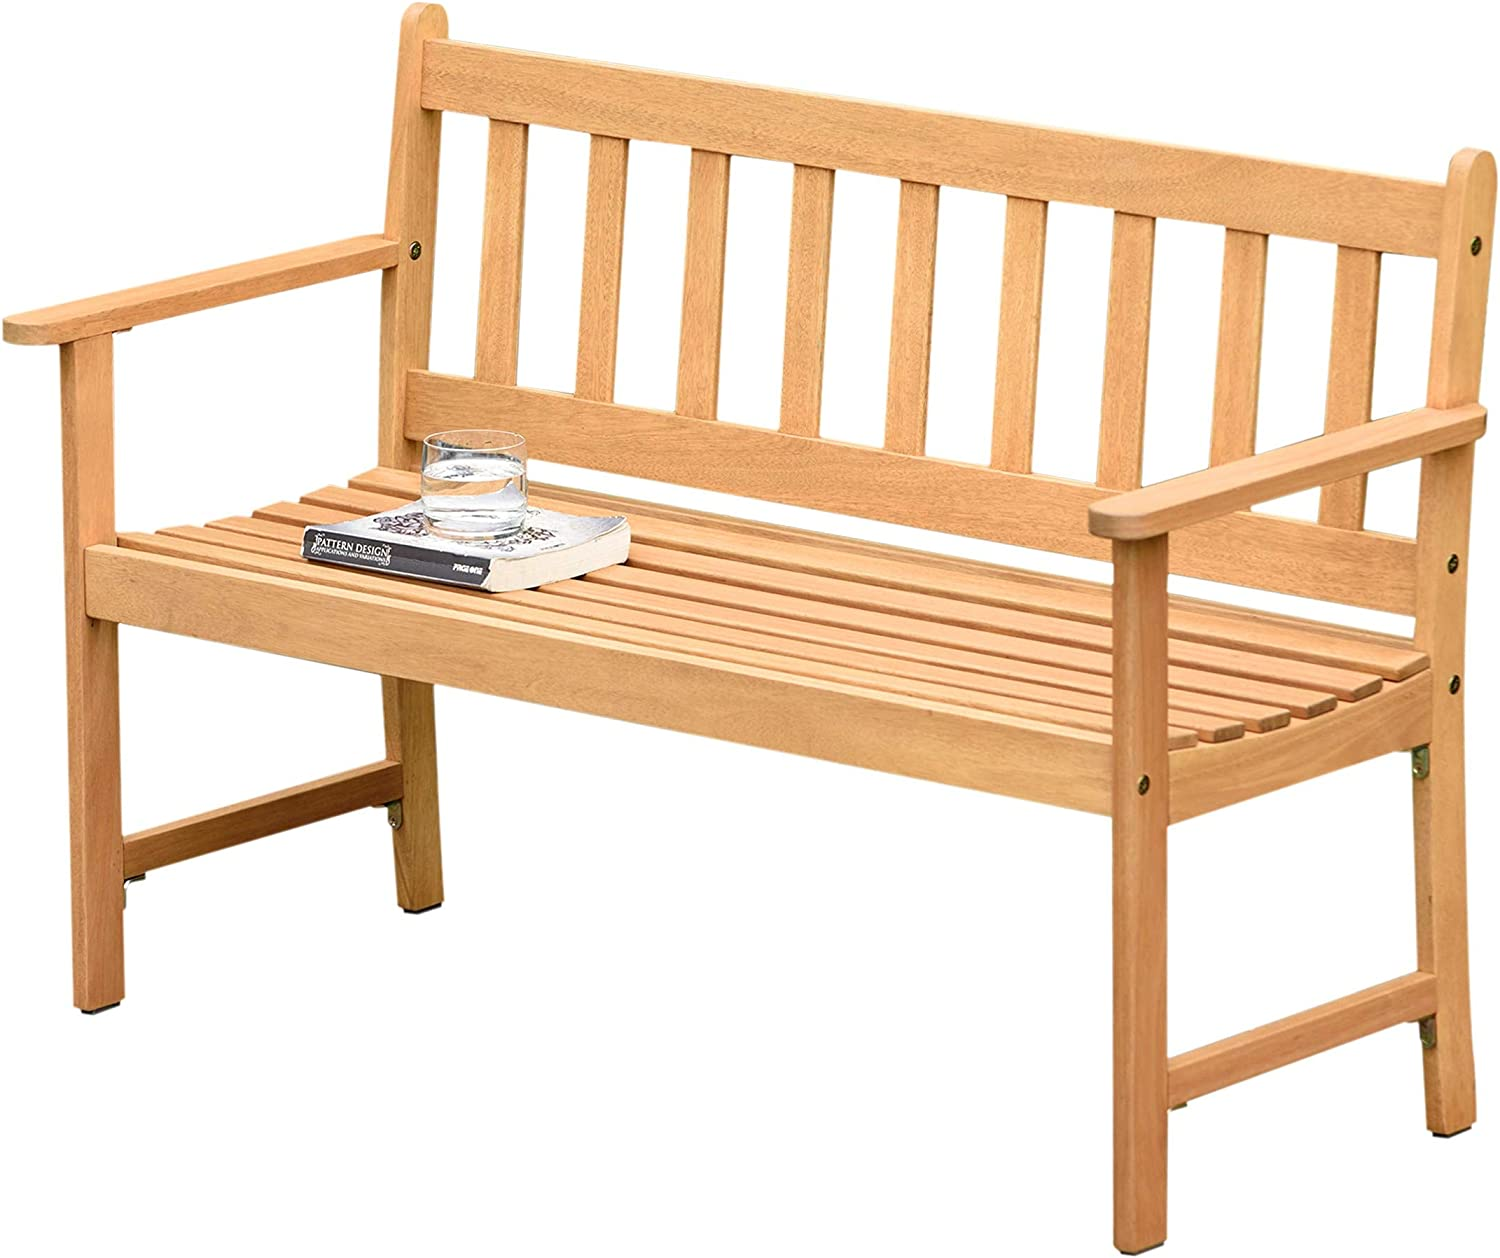 Brampton Omaha 2-Seat Capacity Patio Wood Bench | Teak Finish | Ideal for Outdoors and Indoors, Light Brown